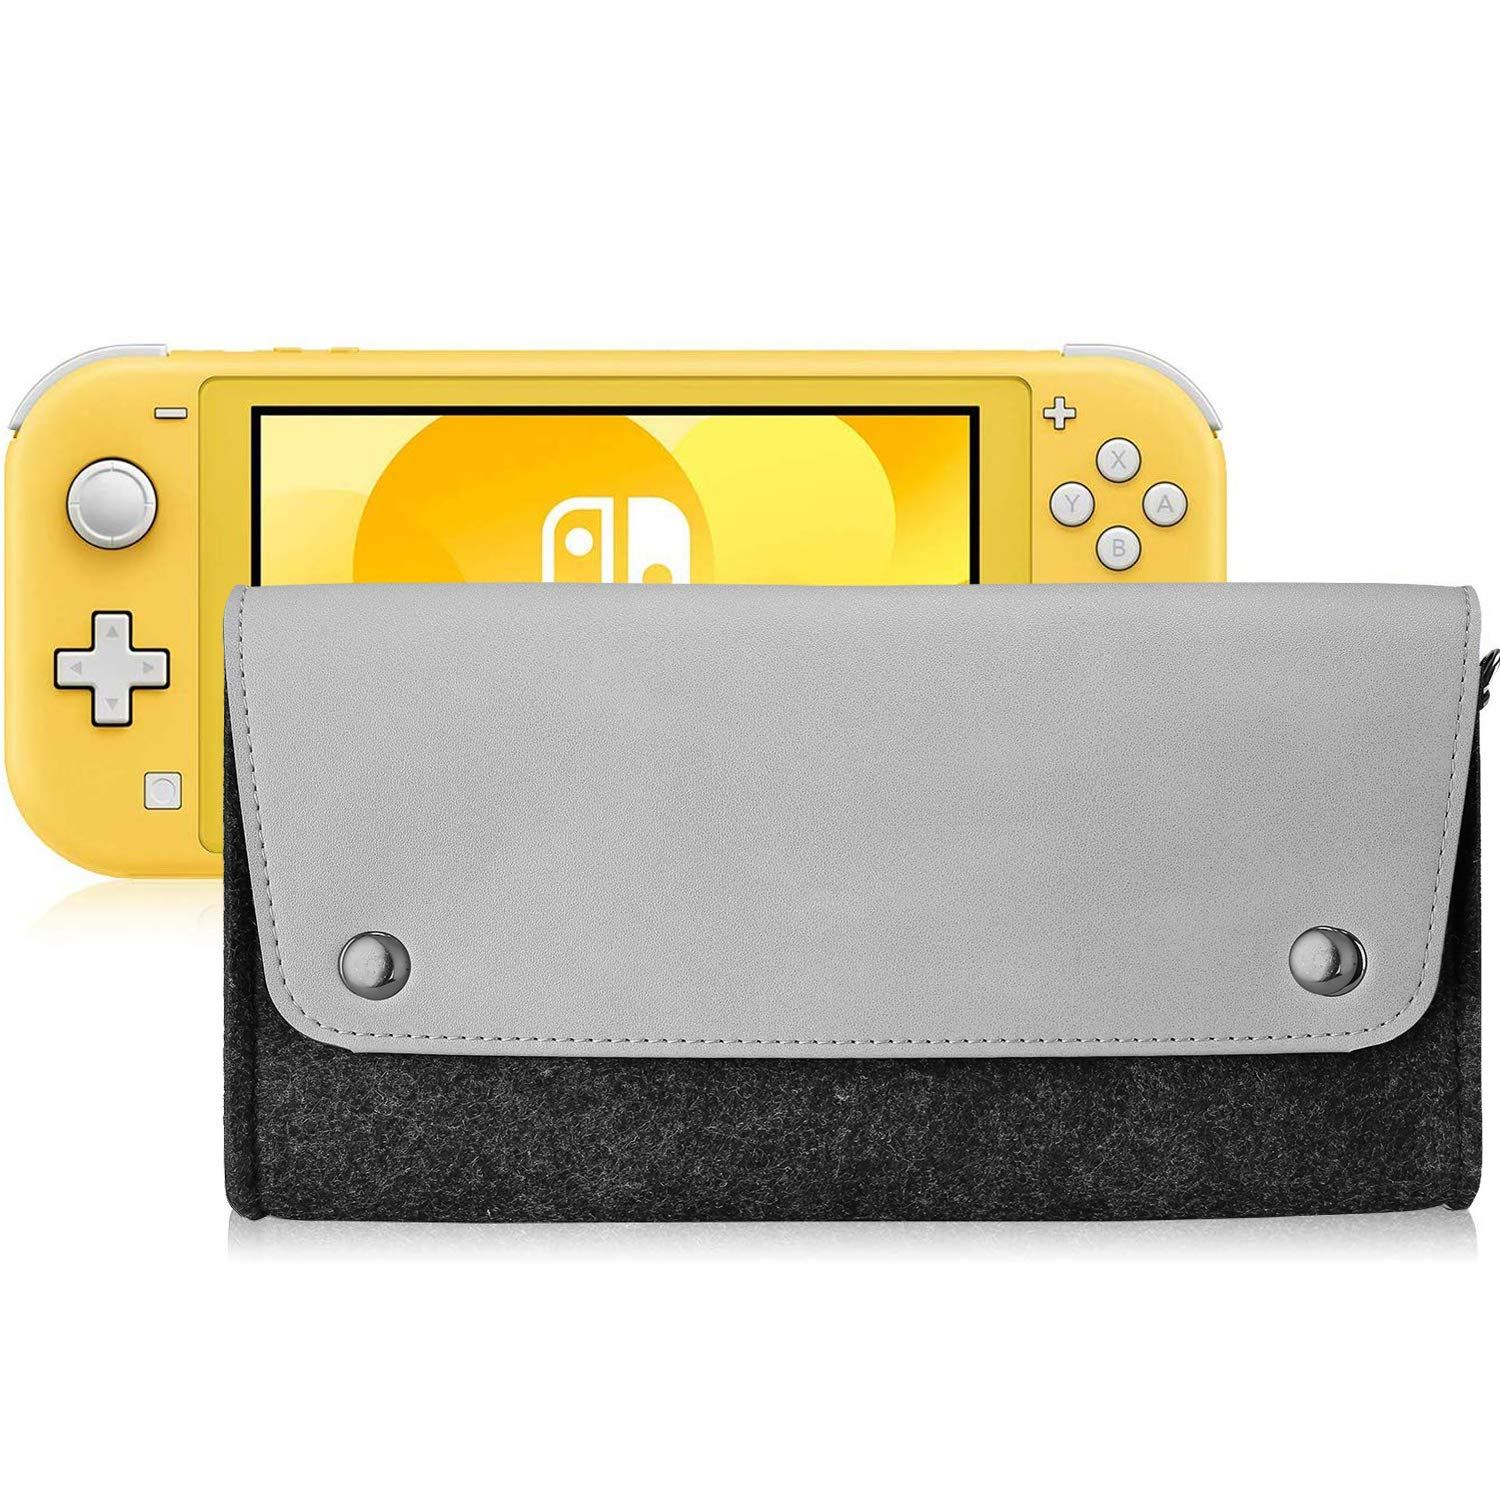 Polaland Switch Lite Felt Case, Portable Carrying Leather Bag Slim Protective Travel Pouch for Nintendo Switch Lite 2019 with 4 Game Cartridges Holders and Magnetic Clasp –Gray